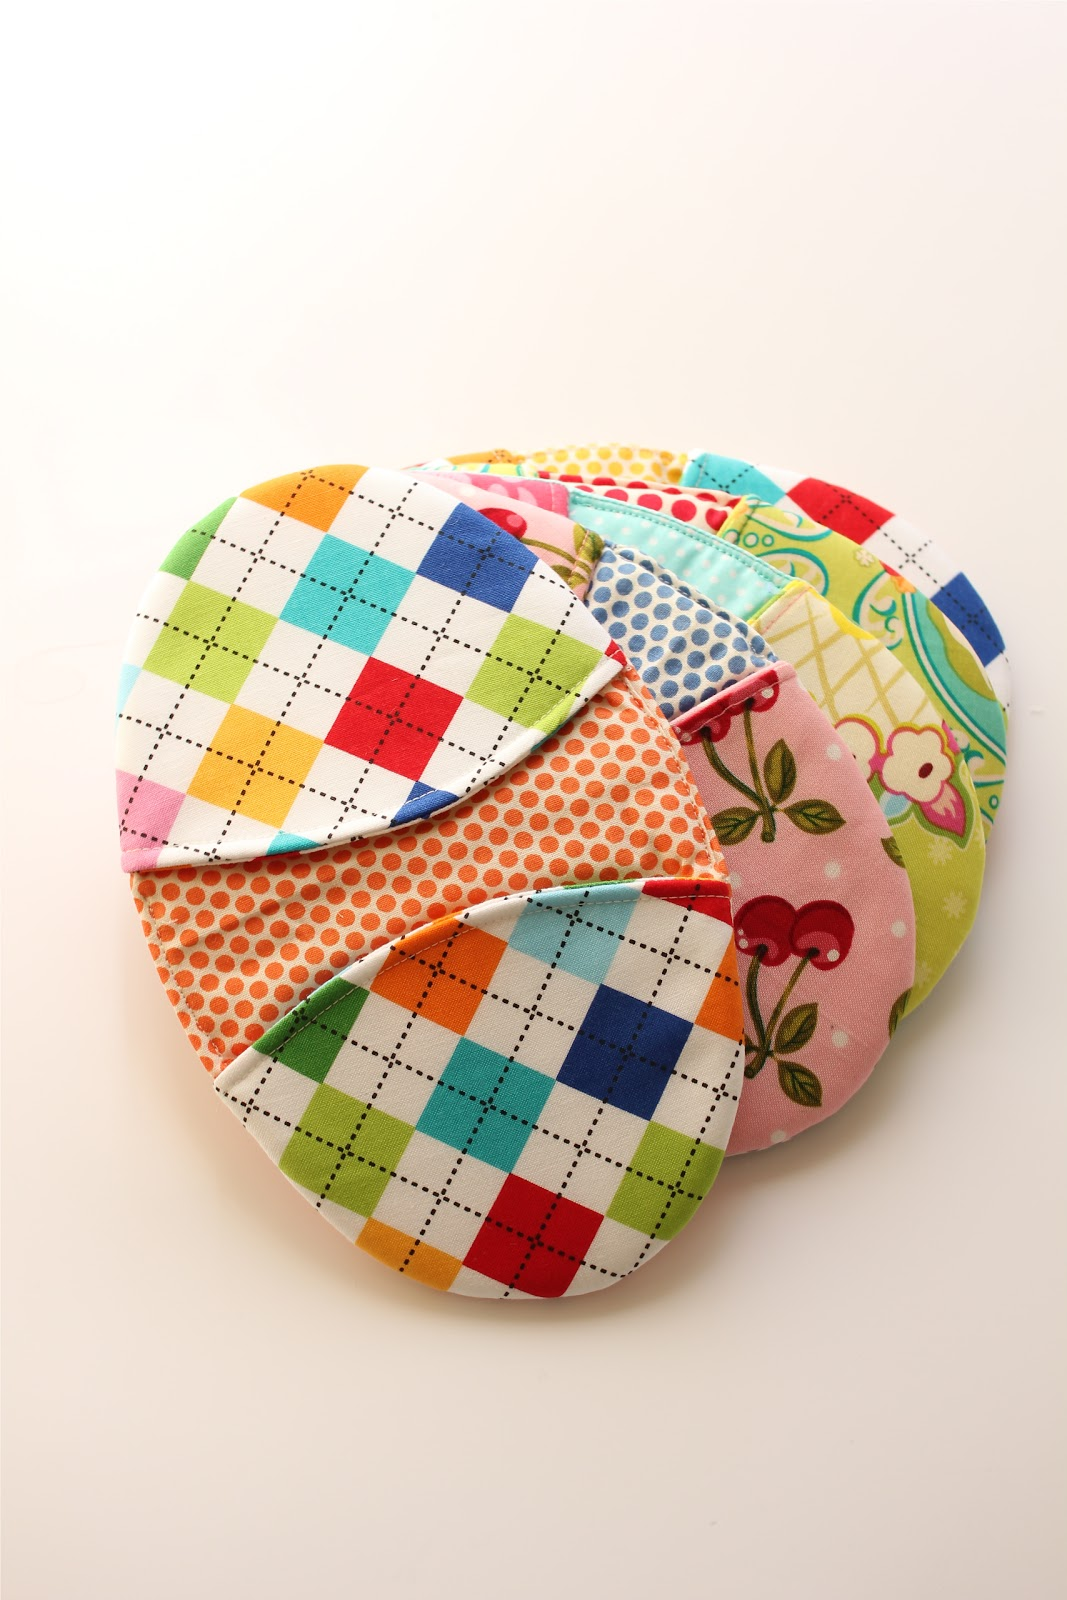 The highest quality sewing videos you'll find on the web today. Learn how to sew from instructors that are experienced in the arts of both sewing AND teaching. Hundreds of sewing videos, sewing tutorials .